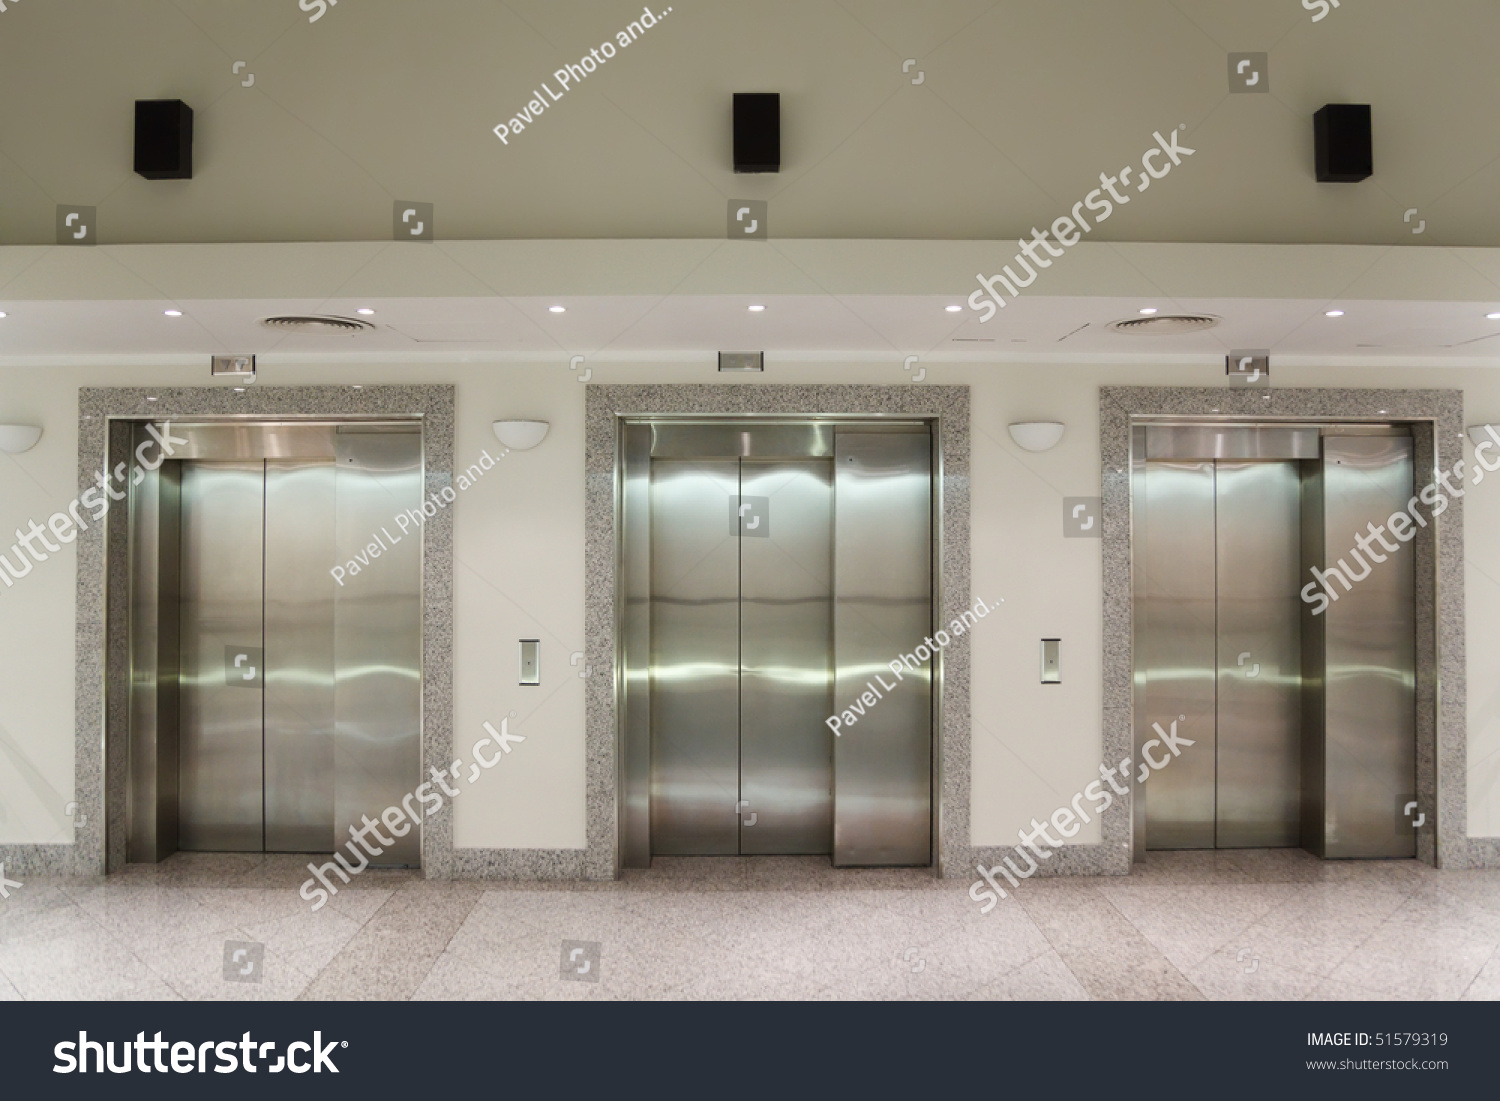 Three Elevator Doors Corridor Office Building Stock Photo 51579319 ...